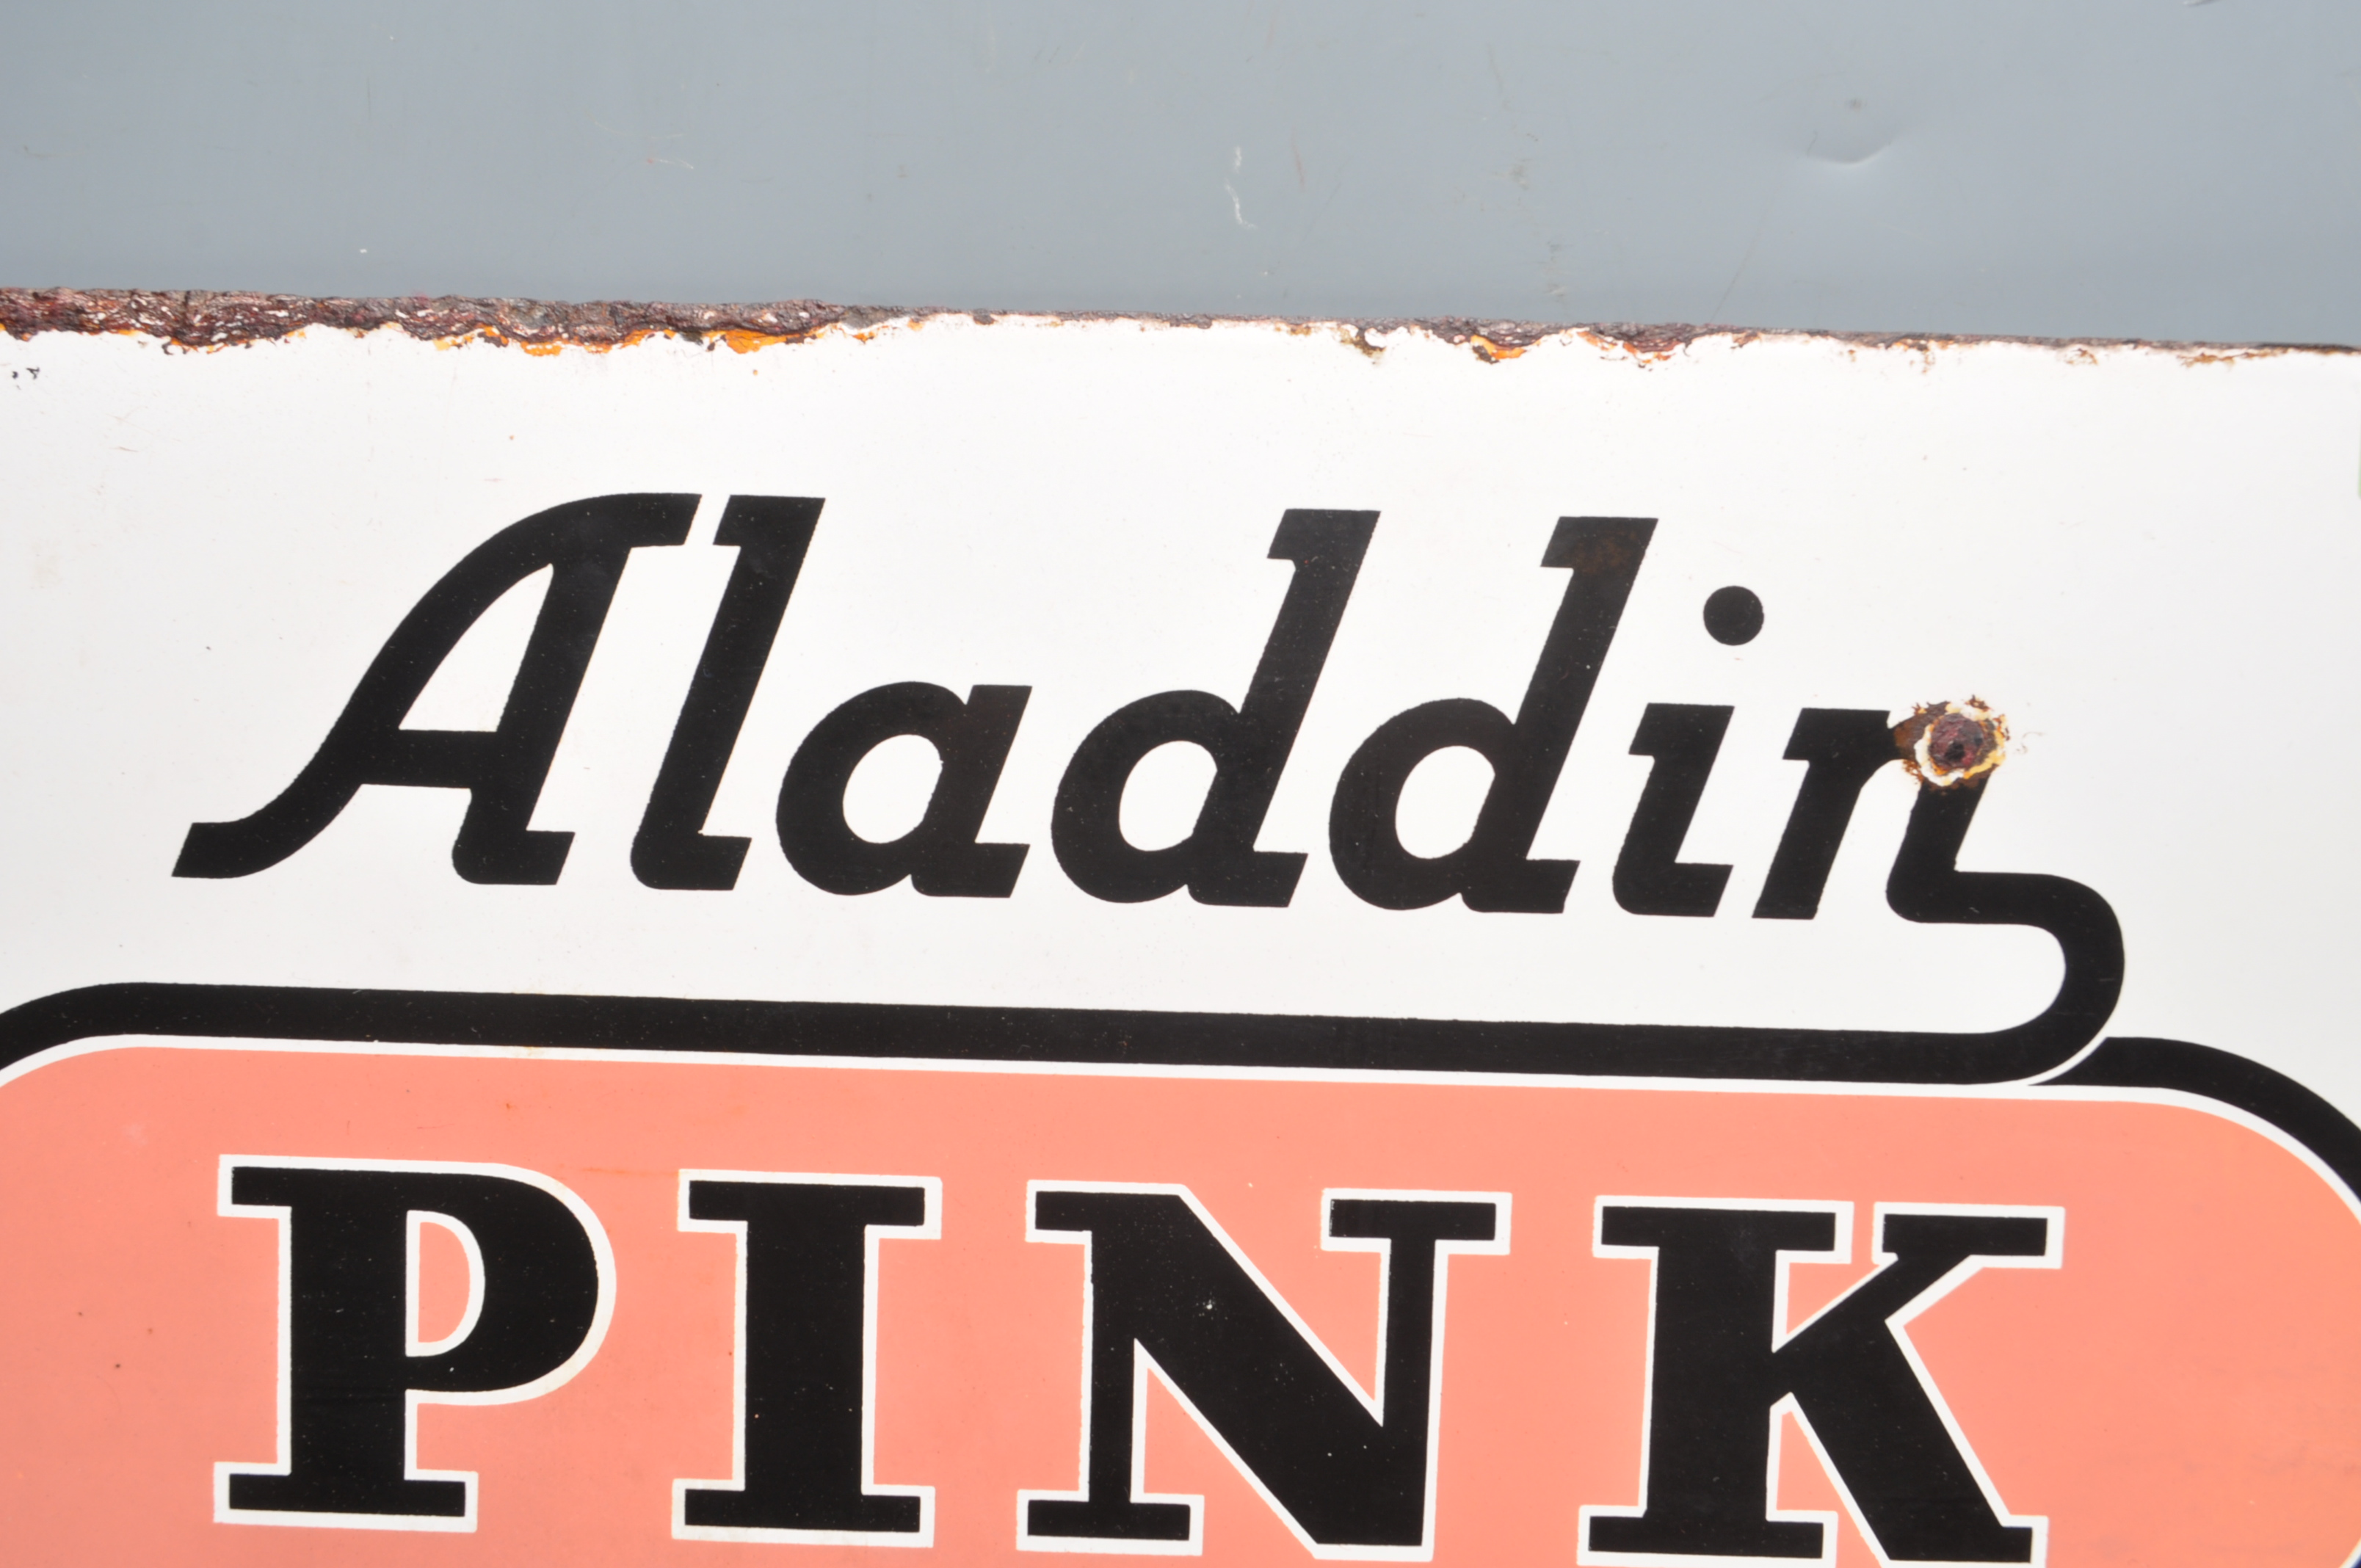 VINTAGE HABERDASHERY DOUBLE SIDED ENAMEL SIGN BY ALADDIN PINK PARAFFIN - Image 2 of 7